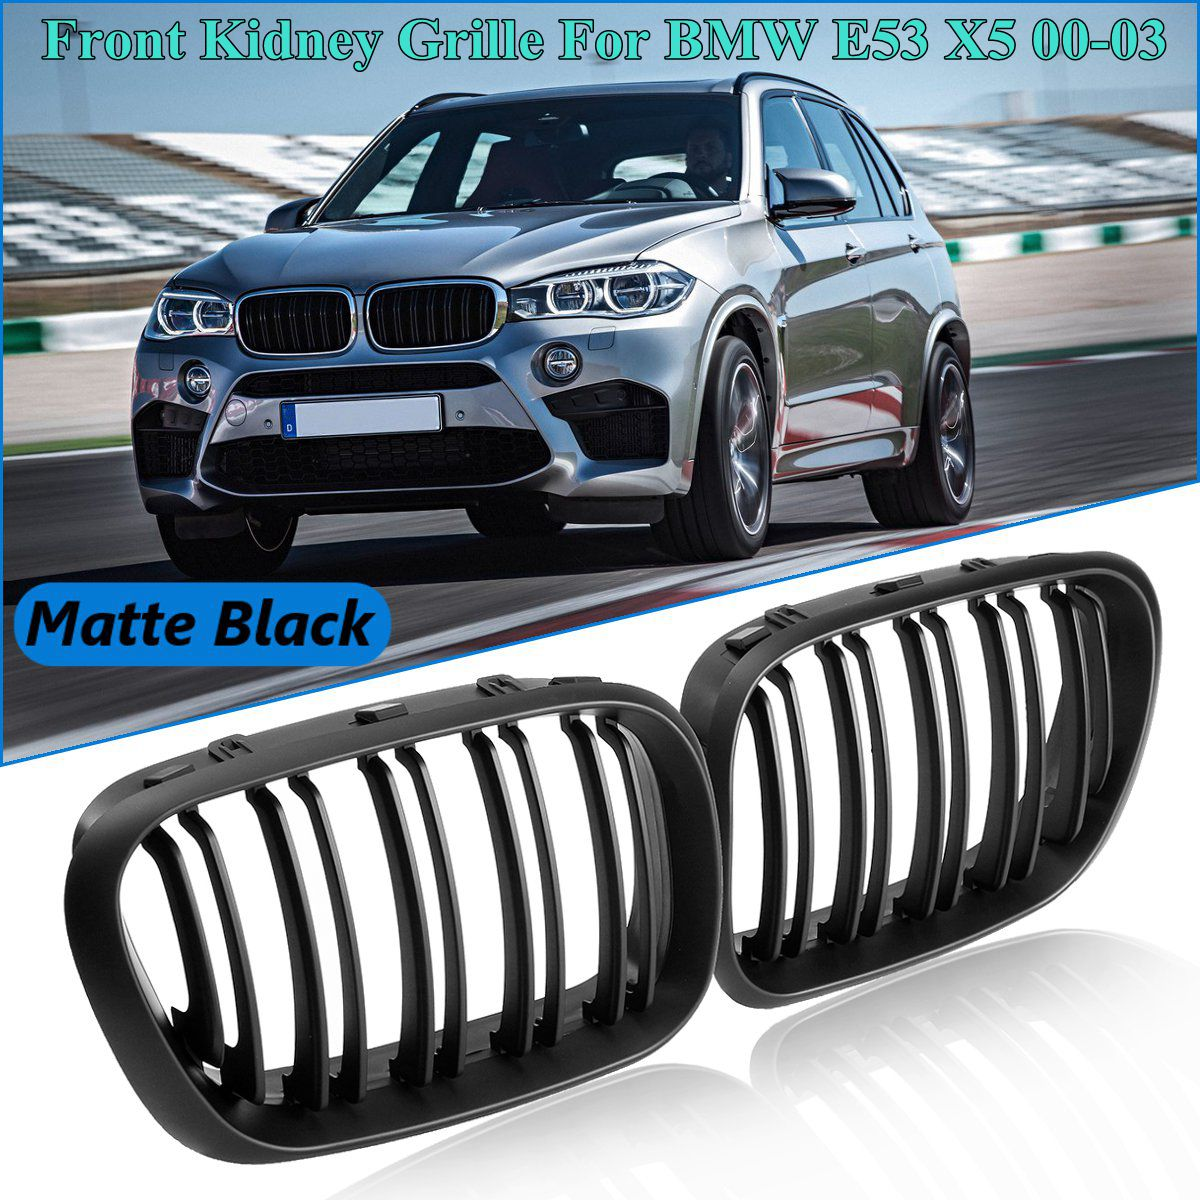 Pair Matte Black Front Kidney Grille Grills Double Slat For BMW <font><b>E53</b></font> X5 2000 <font><b>2001</b></font> 2002 2003 Car Styling image